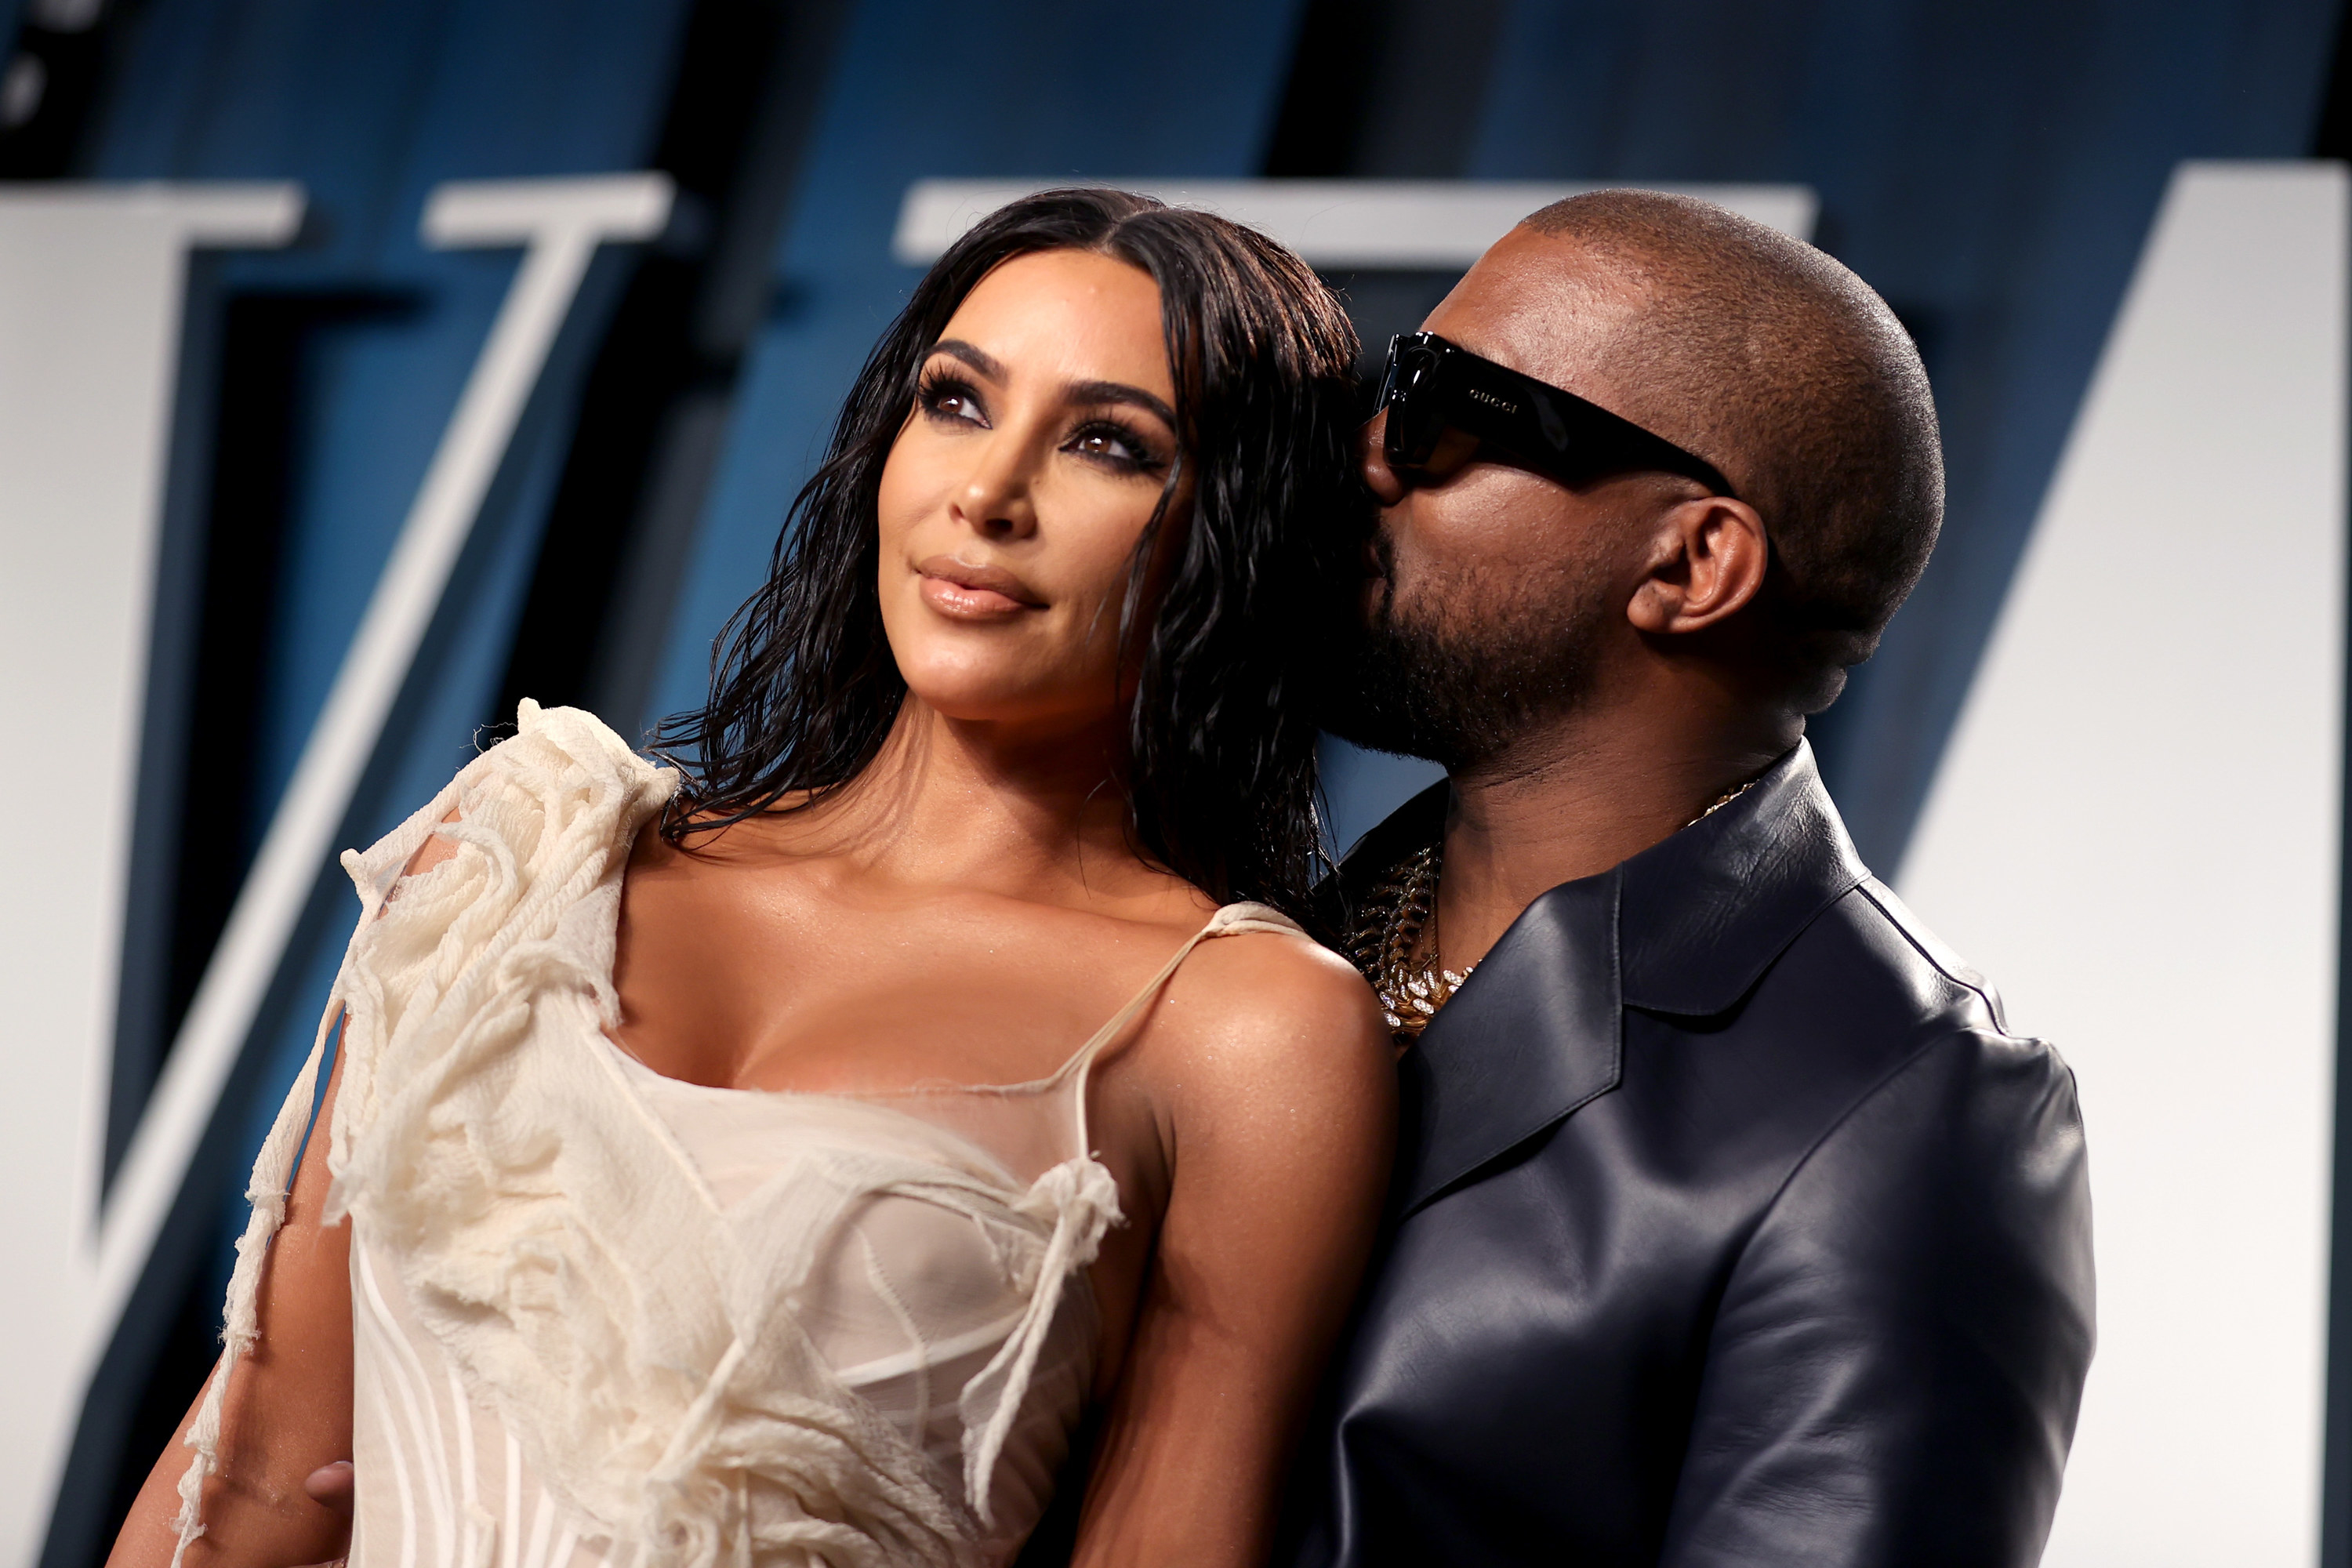 Kim, in a white dress, stands in front of Kanye, in a leather suit